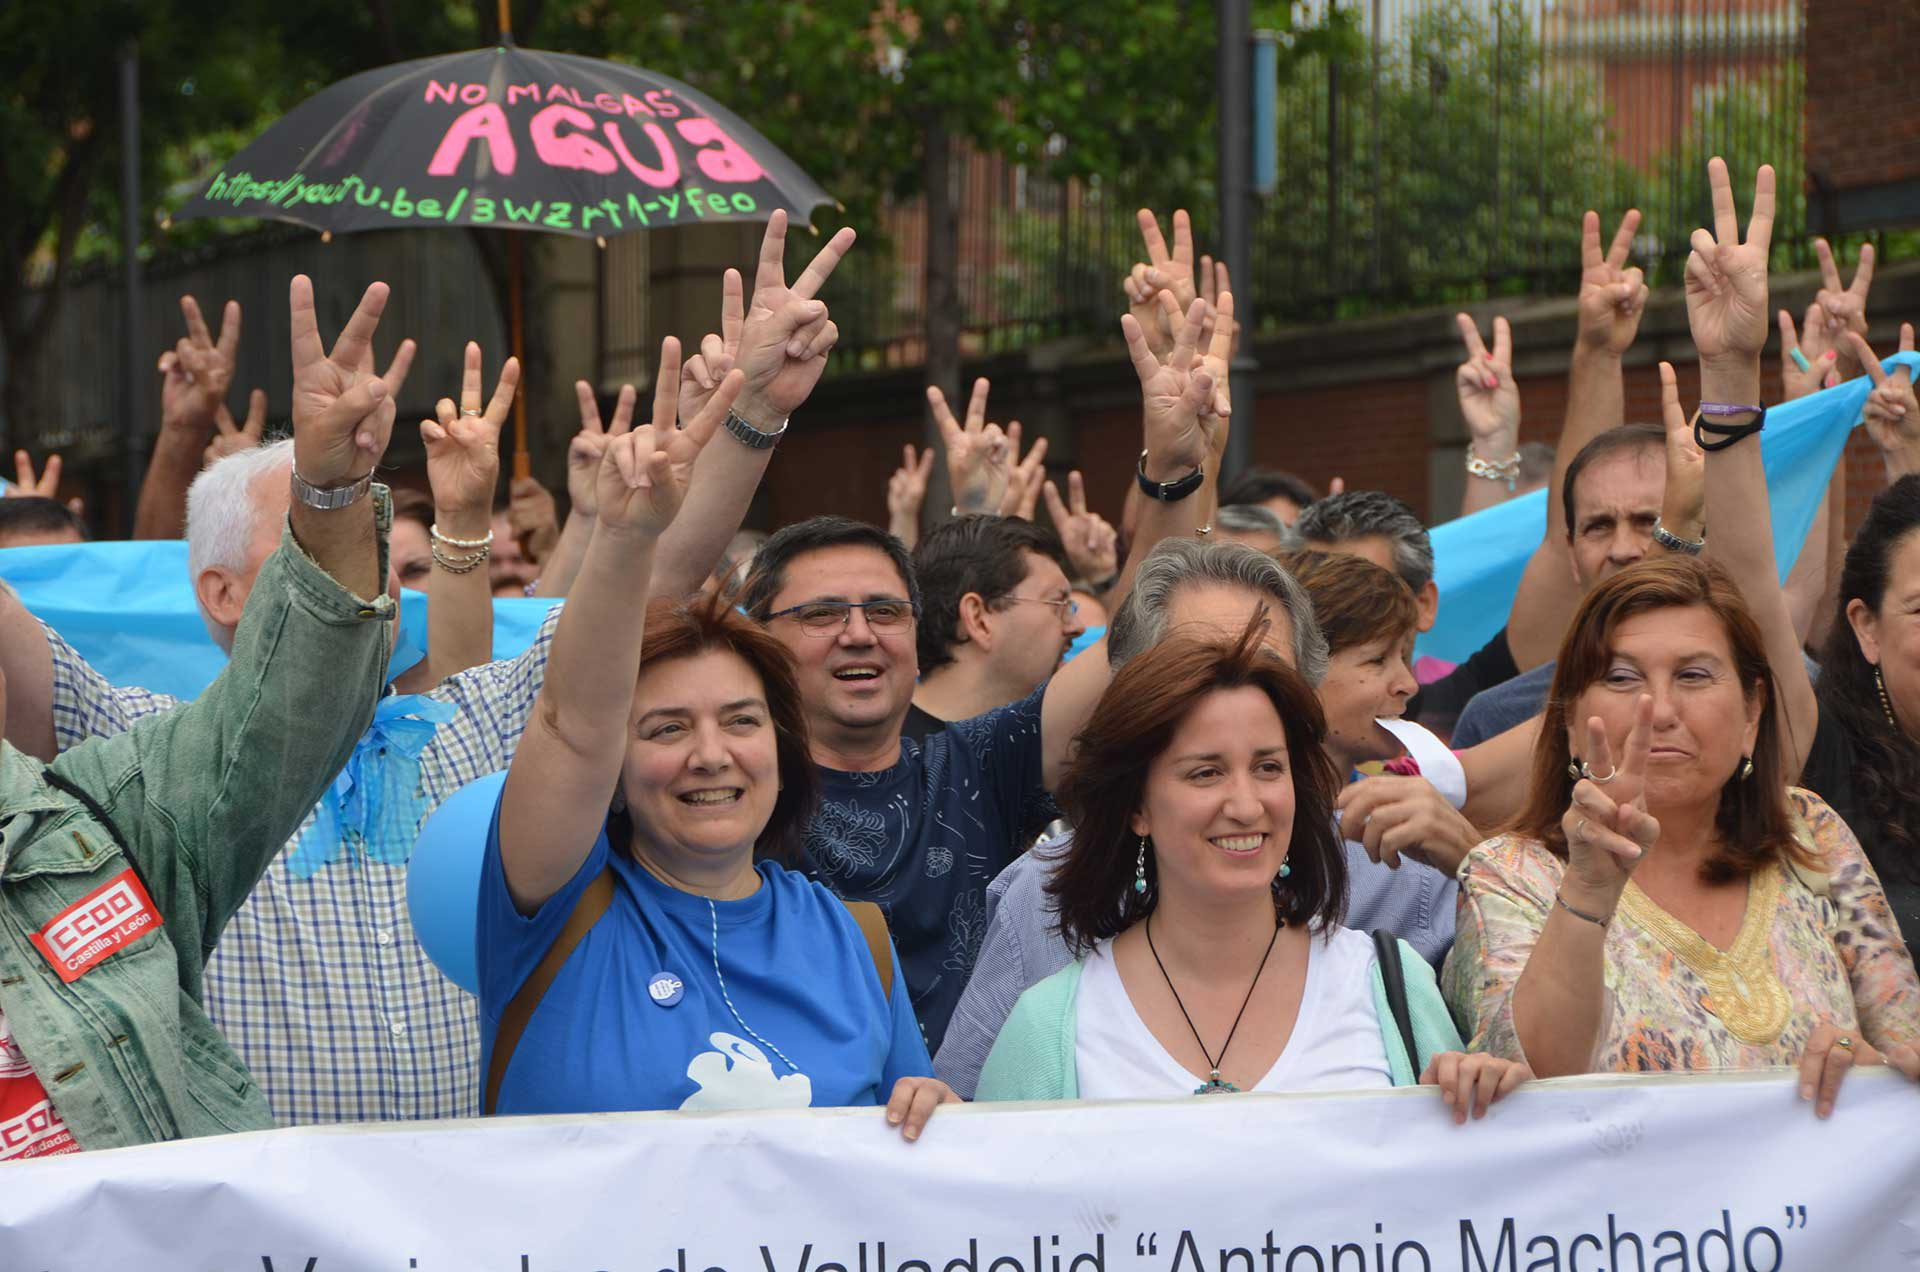 Valladolid, Spain: Residents regain public control of water